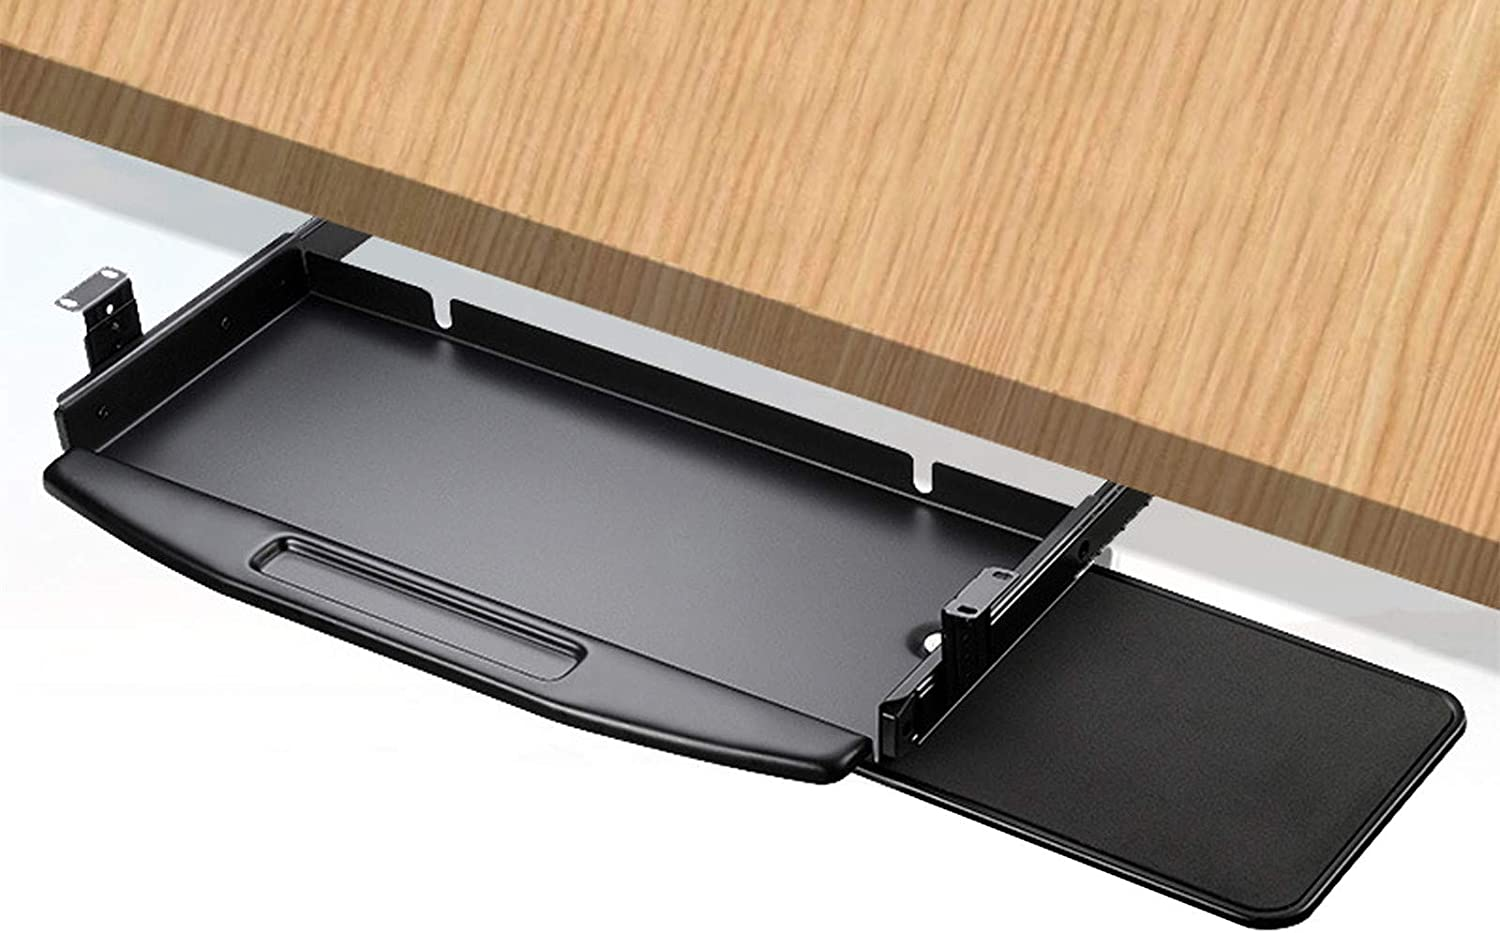 Keyboard Tray Under Desk Sliding Pad Large Max 80% Columbus Mall OFF R with Mouse